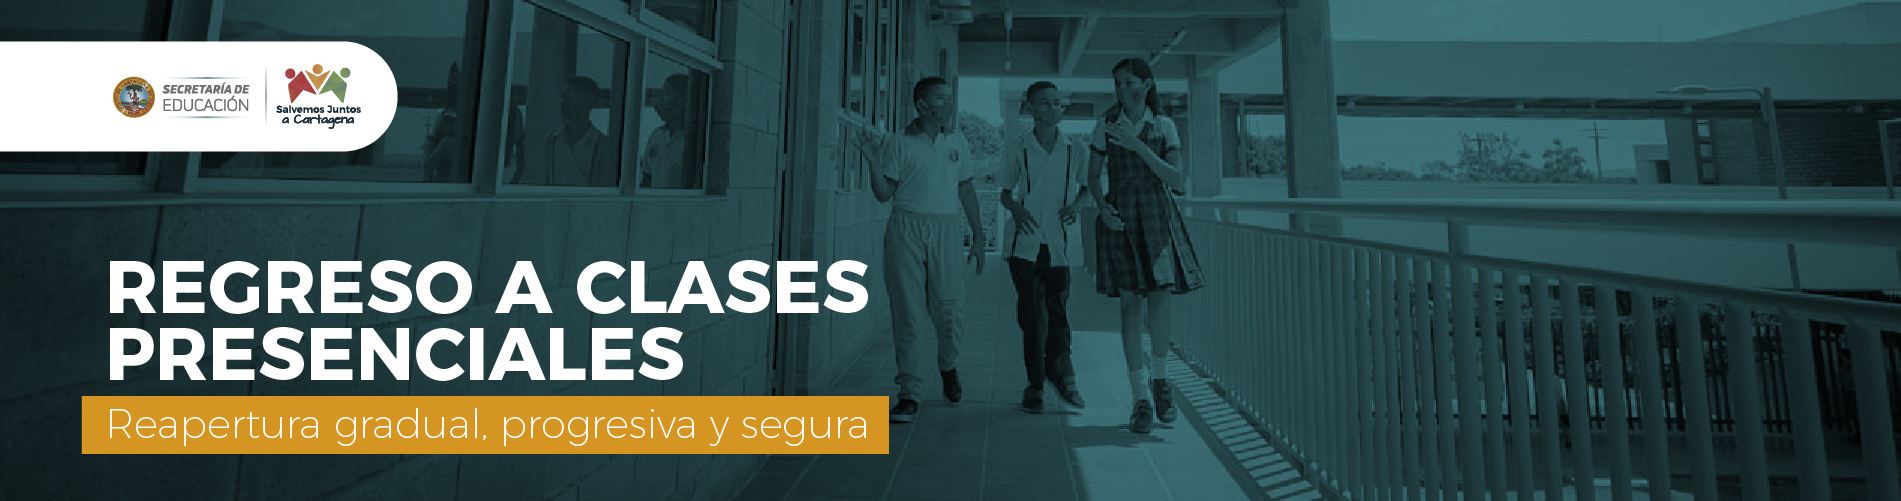 Banner-Regreso-a-Clases